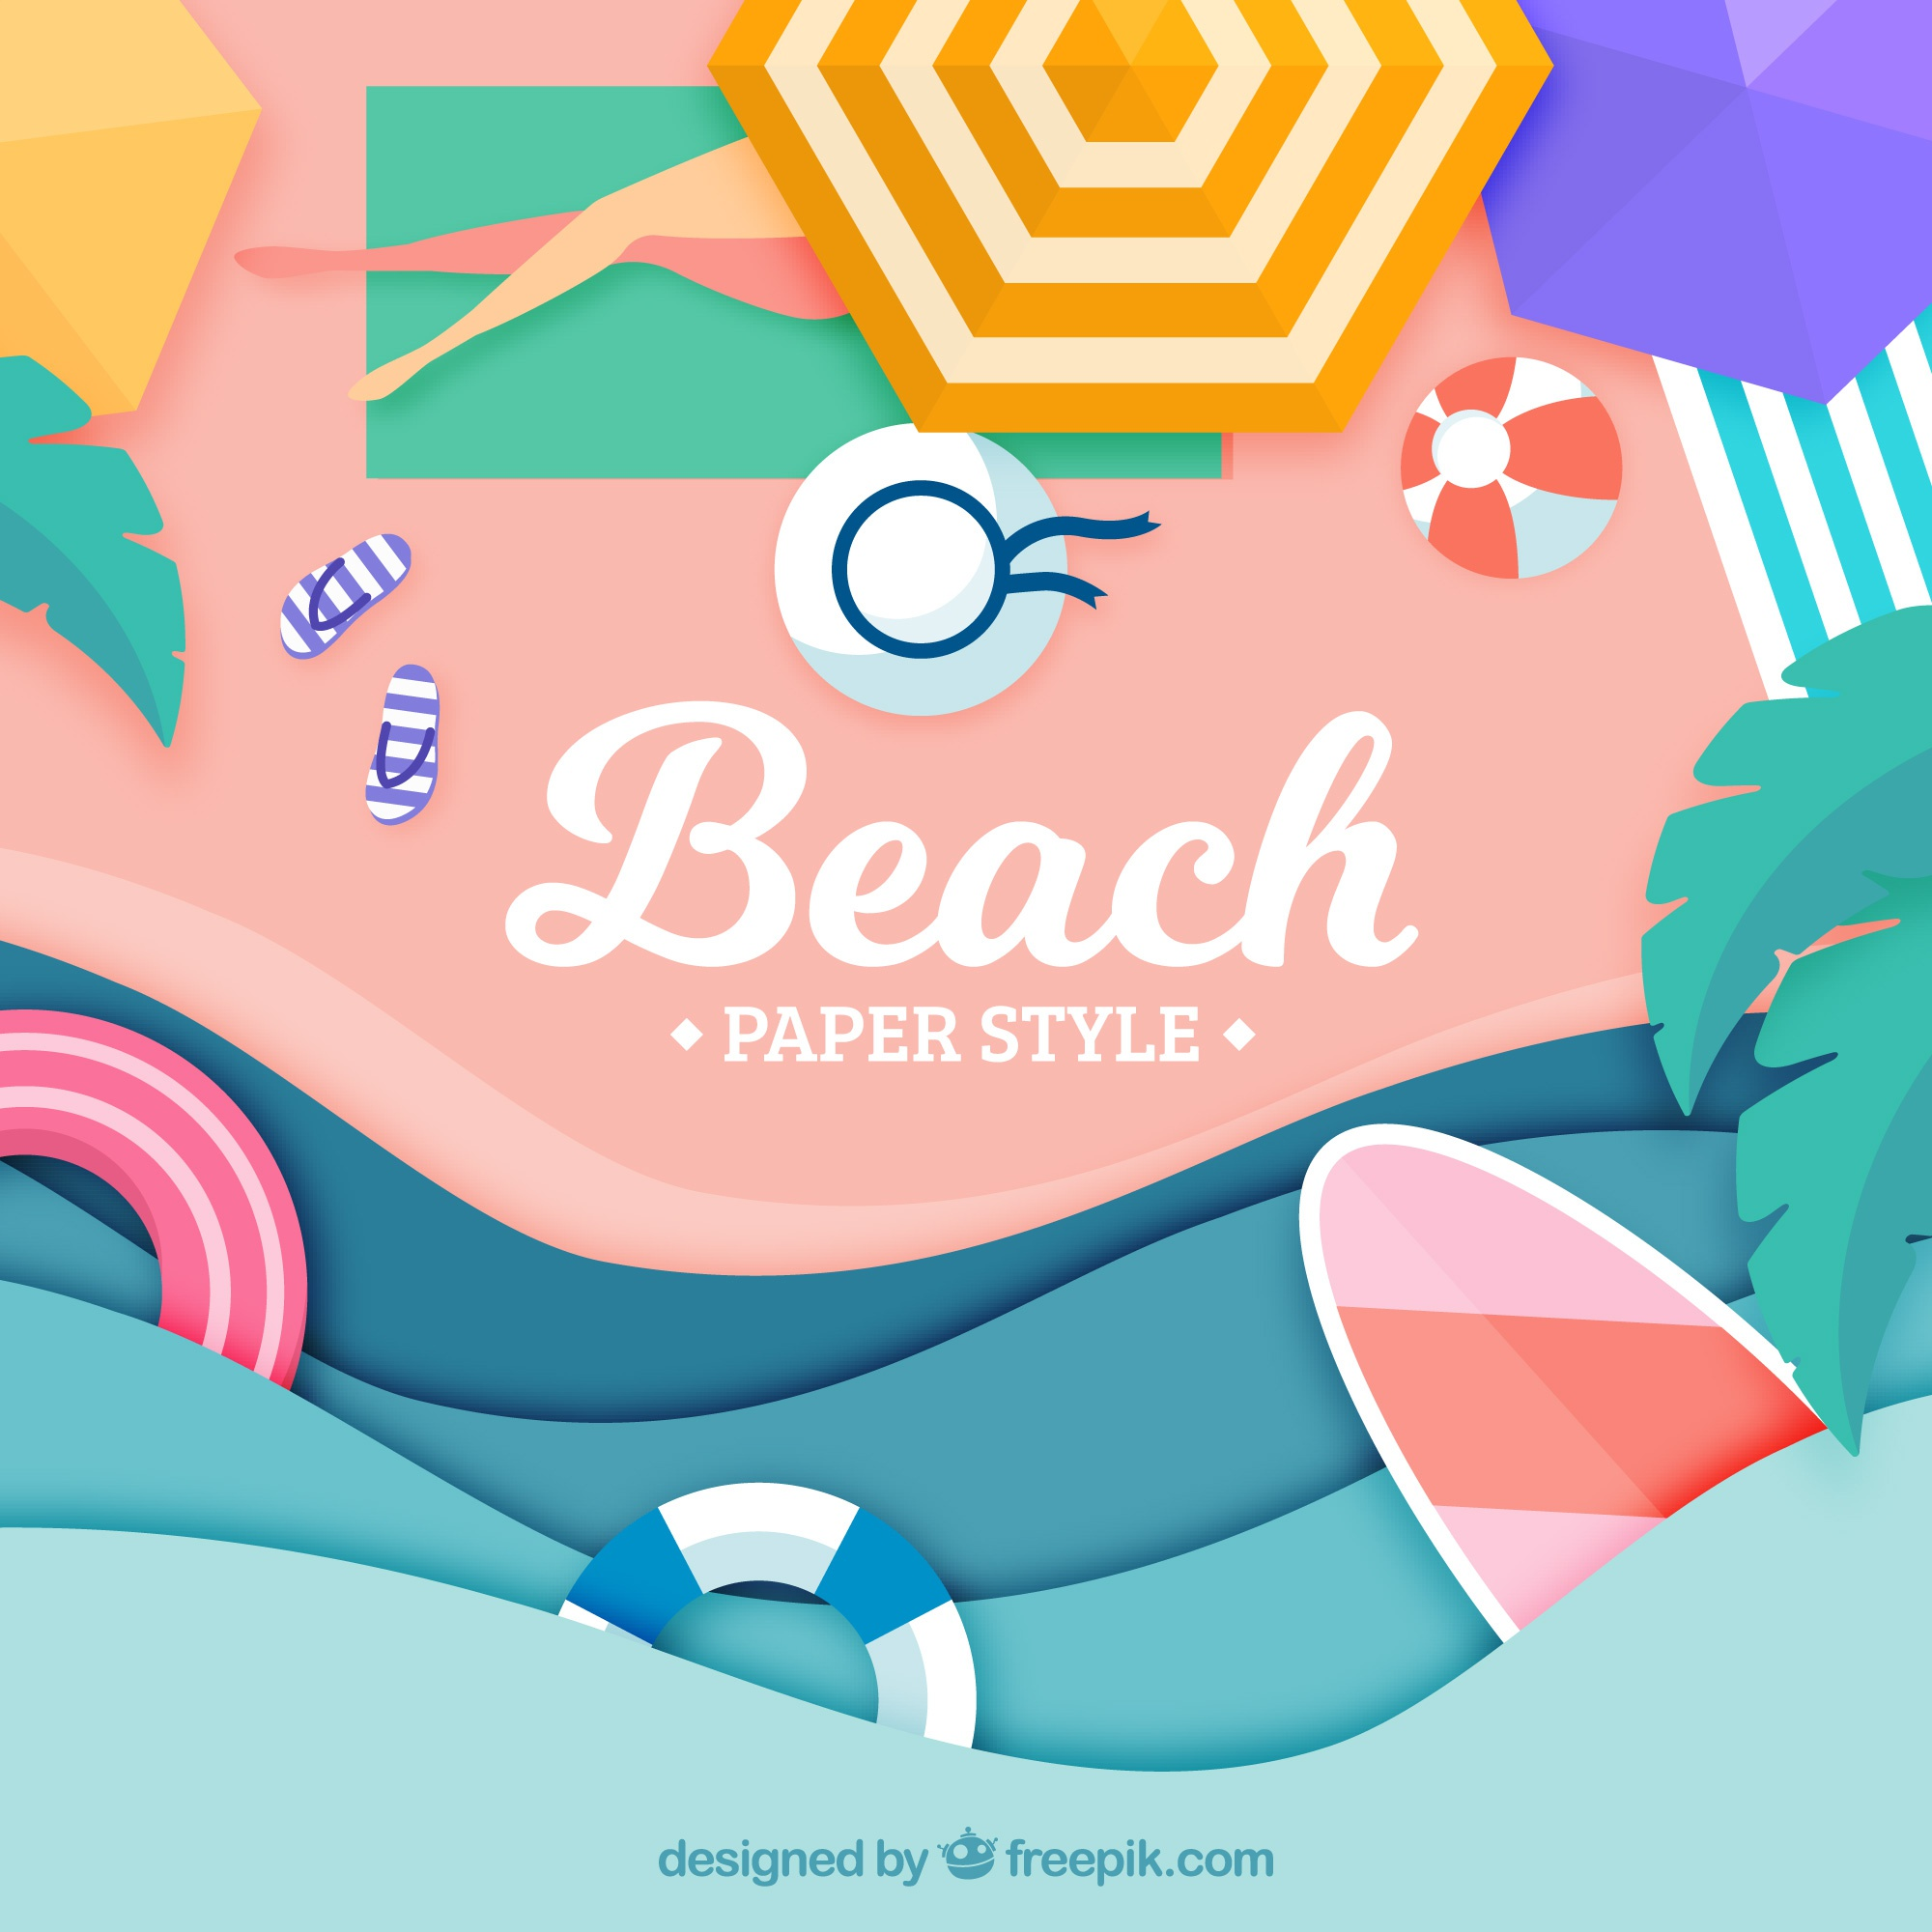 Background of beach from the top in paper style